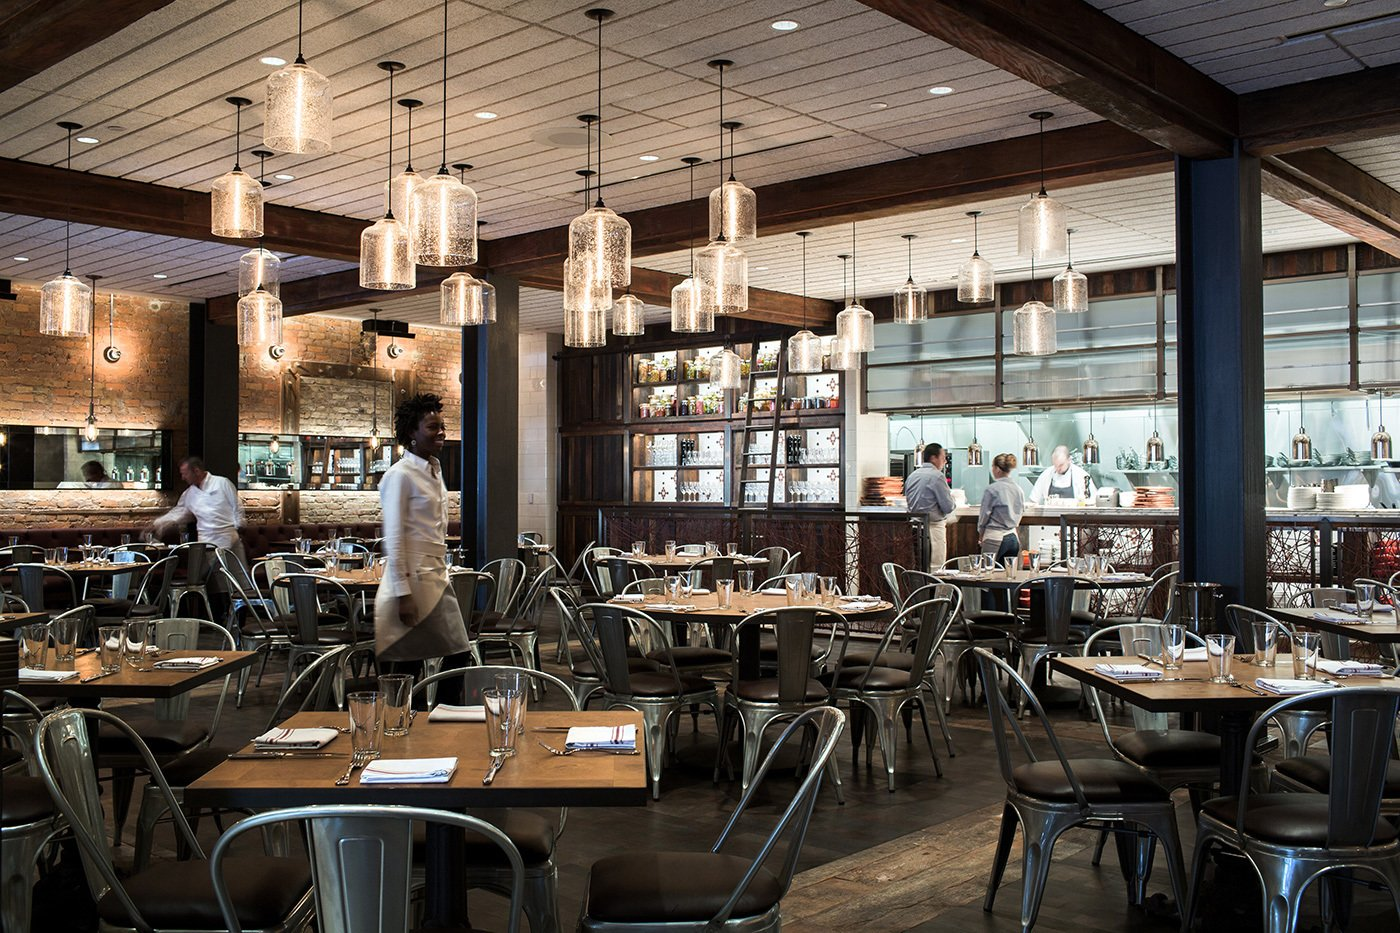 Photo 2 of 4 in Modern Restaurant Pendant Lights Add to Charm of Popular Dallas Eatery